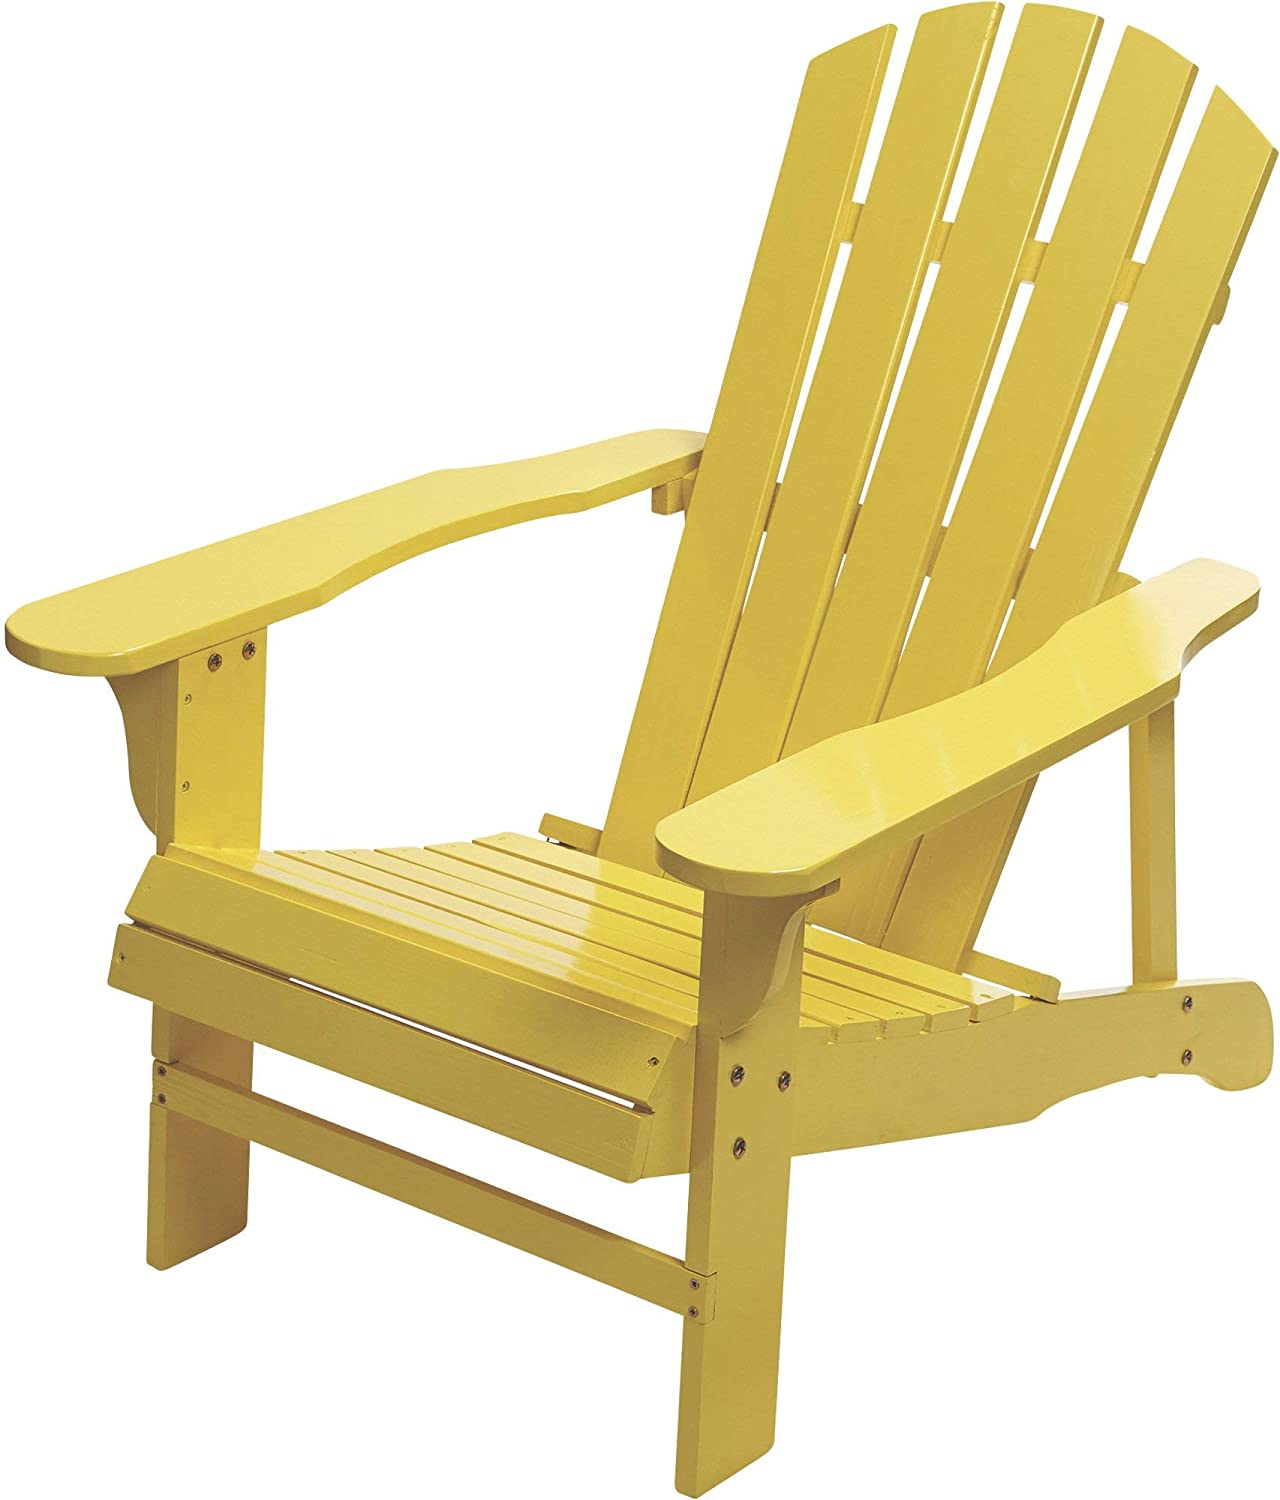 Classic Painted Acacia Wood Adirondack Chair - Yellow: Kitchen & Dining